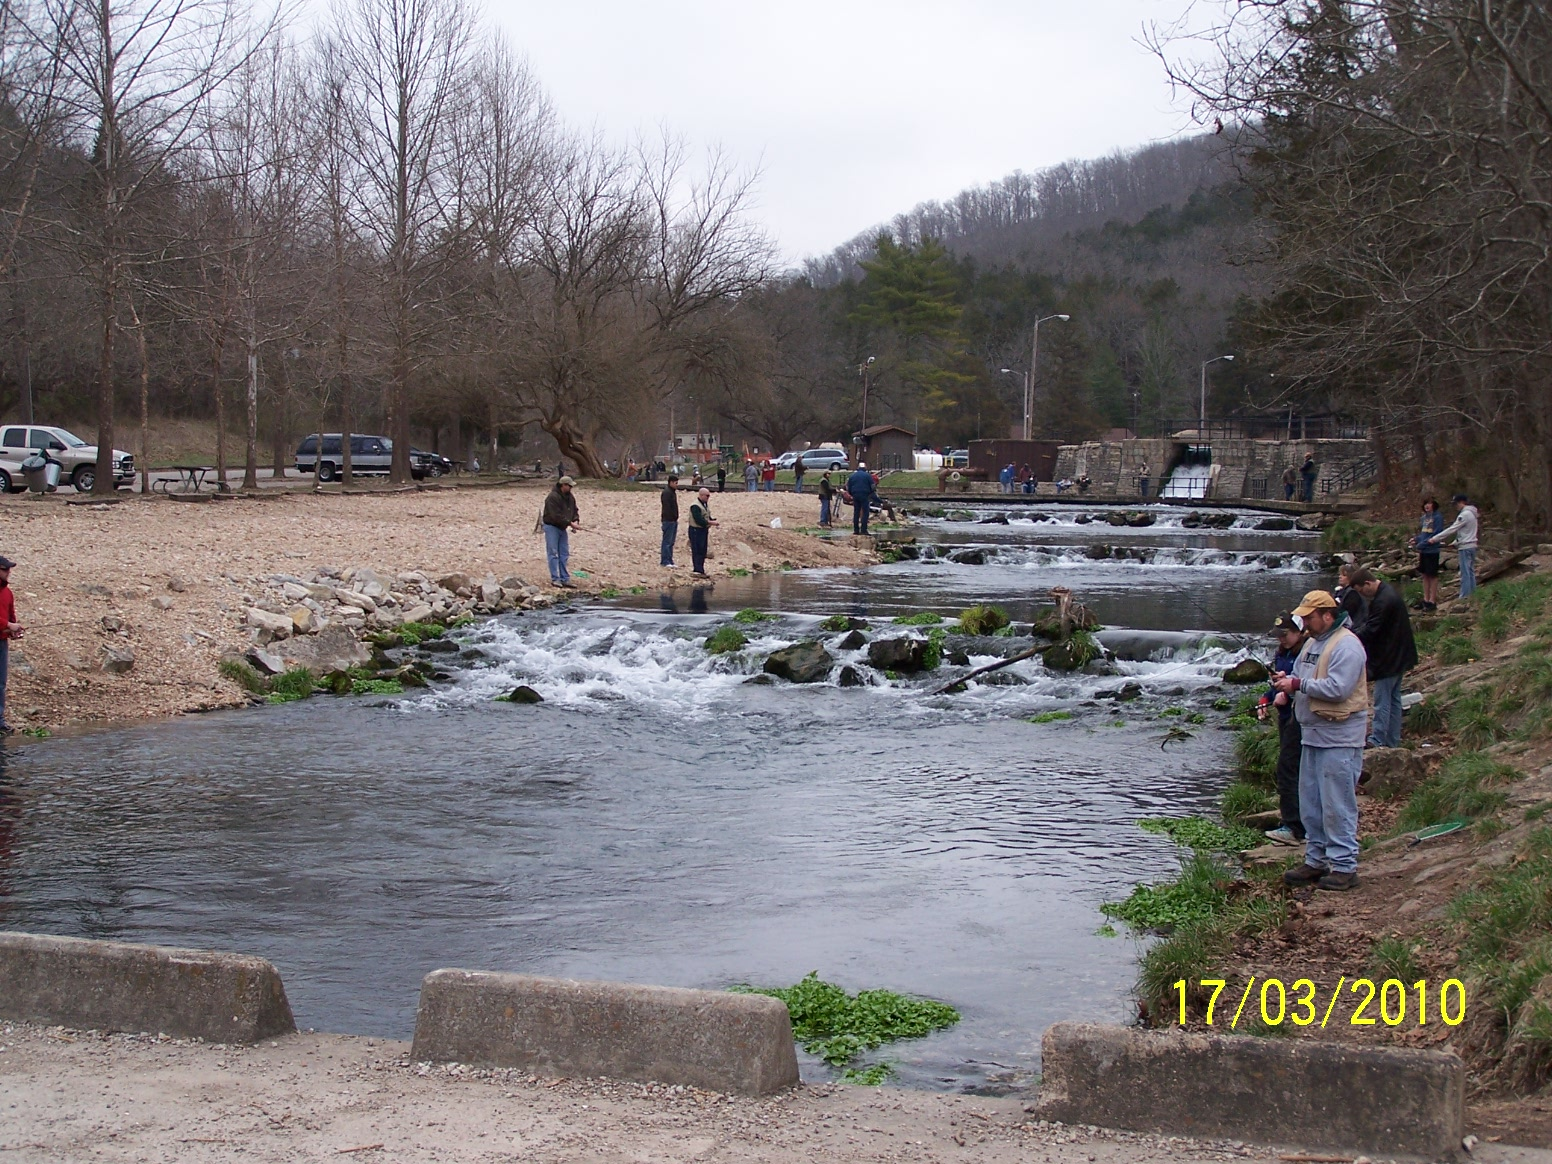 Intuitive value fly fishing roaring river cassville mo for Fly fishing missouri